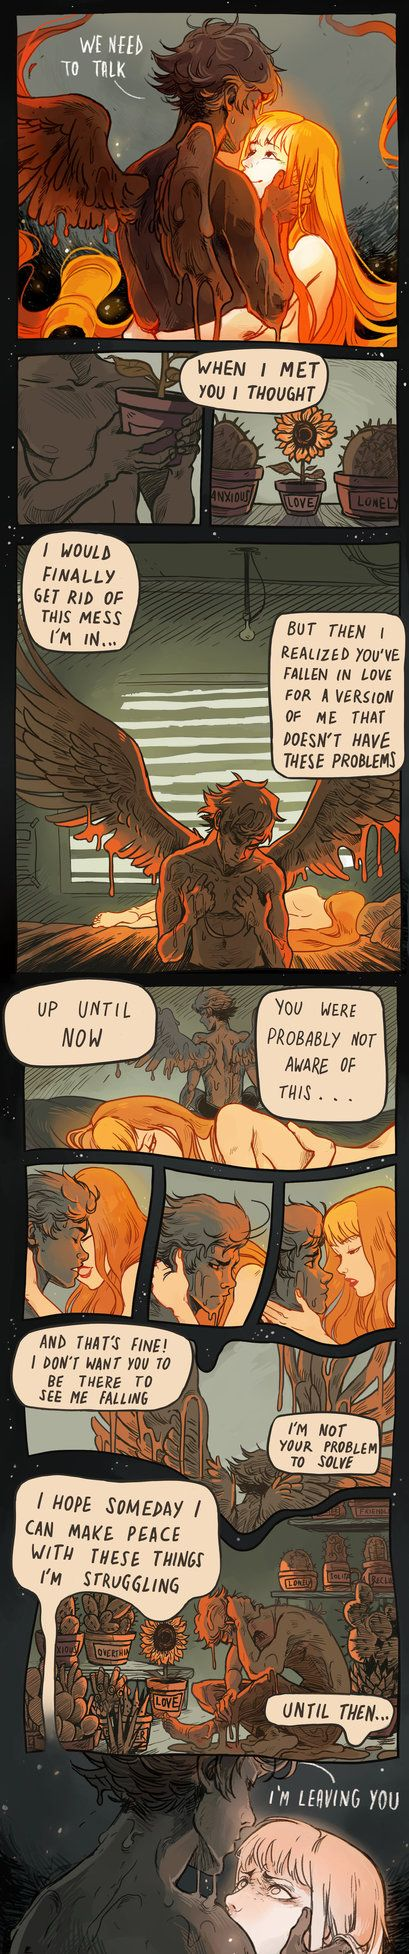 The Lament Of Icarus By Picolokun